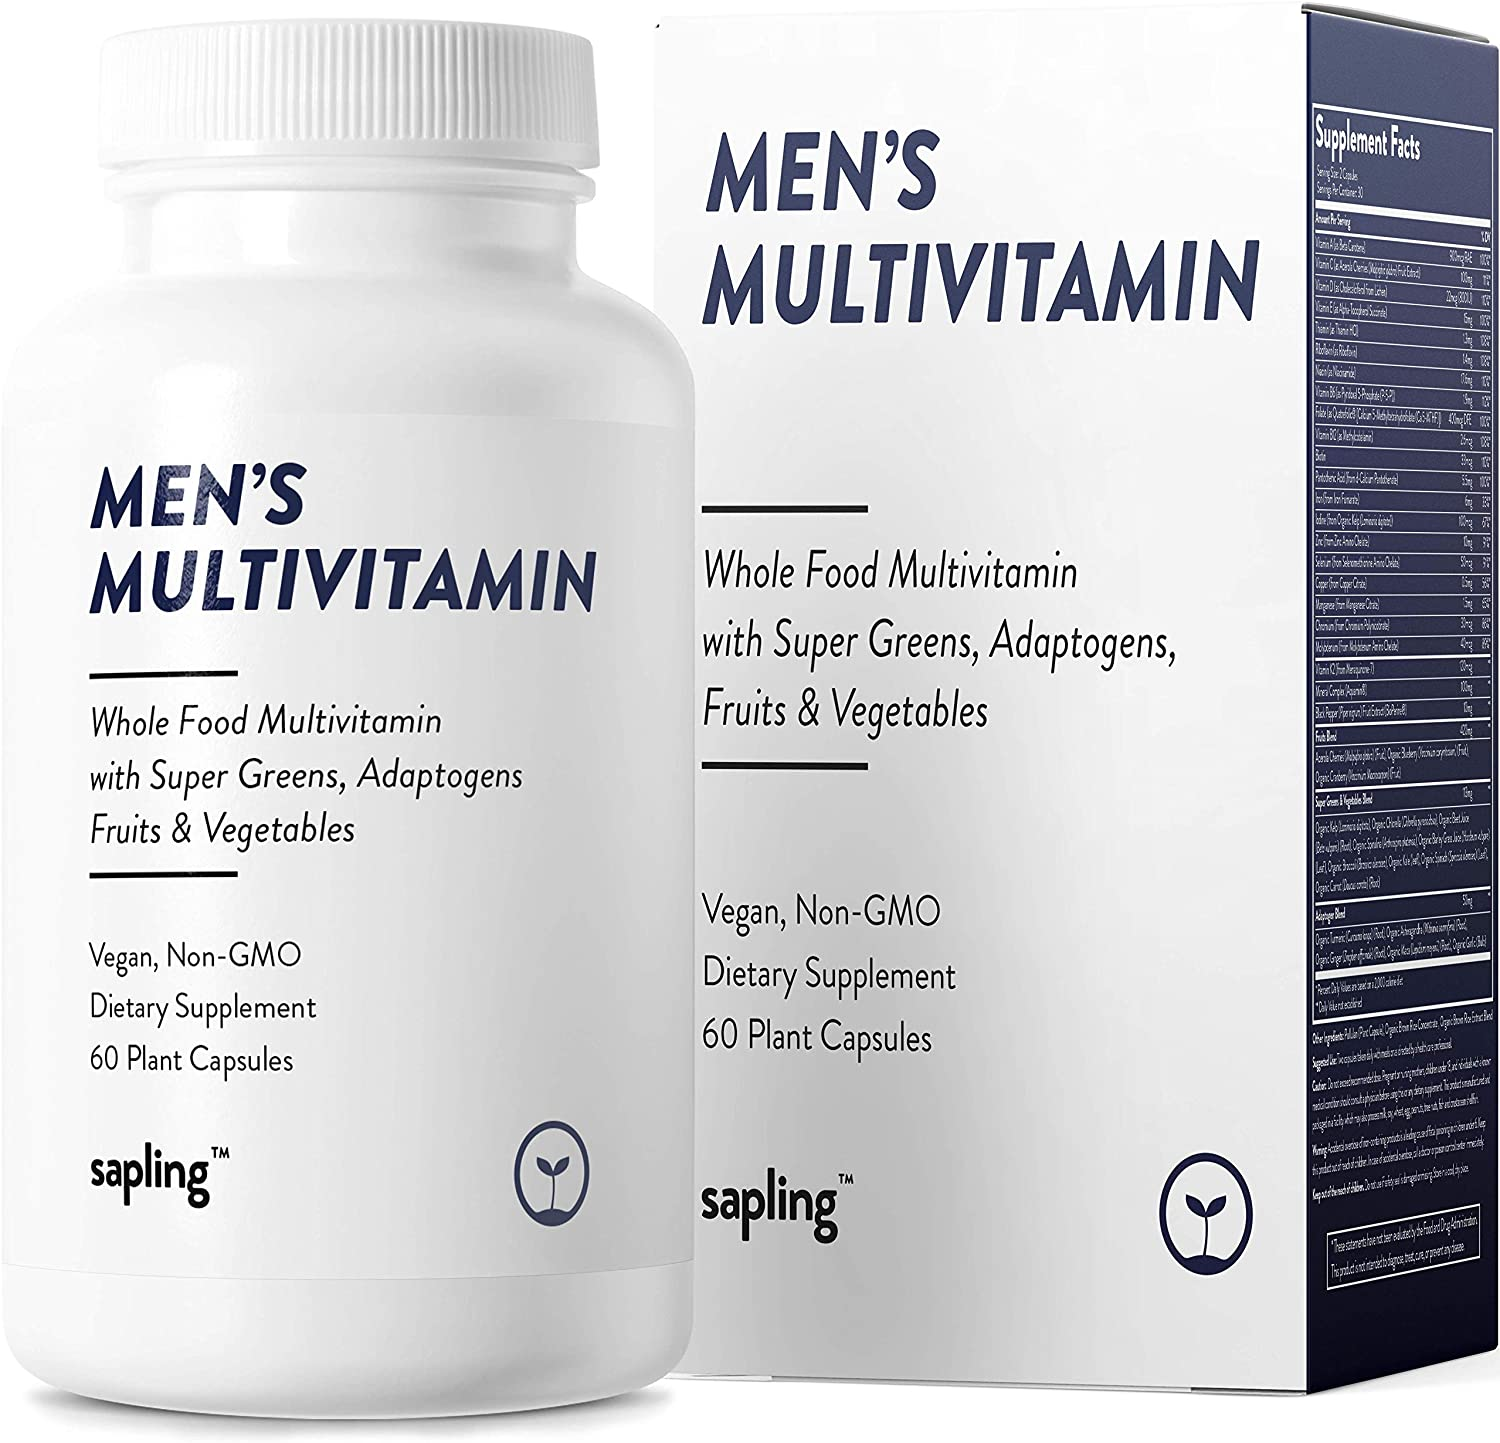 Multivitamin for Men Daily Supplement - with Whole Food Vitamins, Plant-Based, Organic Fruits and Vegetables. Vitamin A, B Complex, C, D3, E, K2 Black Pepper. Vegan and Non-GMO - 60 Capsules